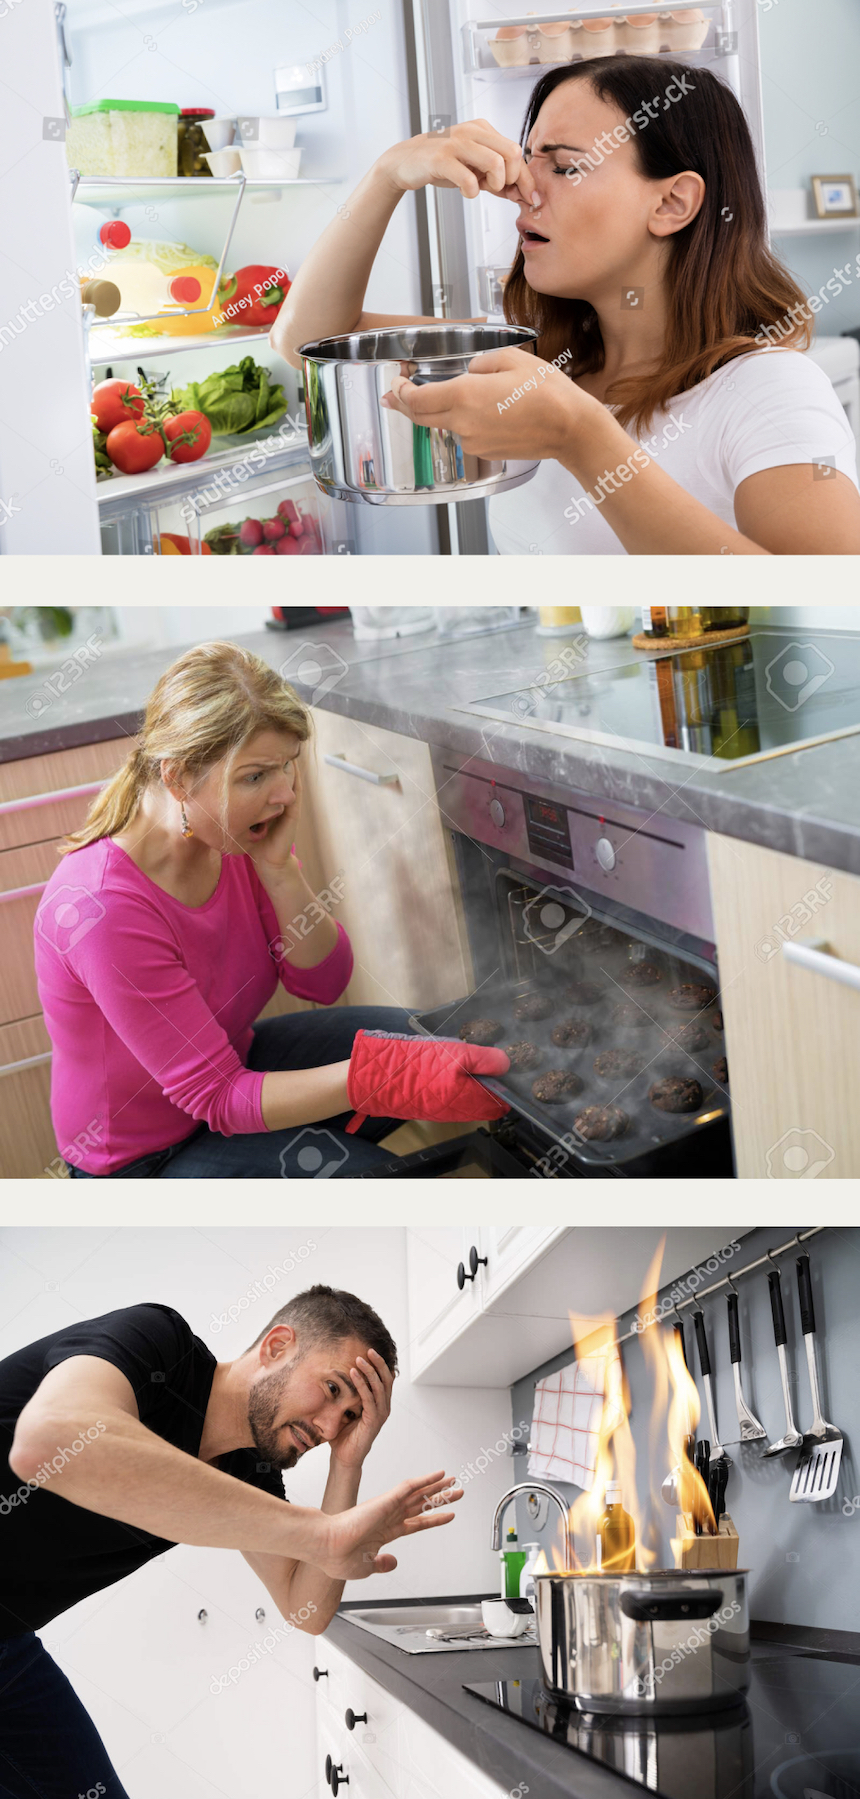 Stock photos of people failing in the kitchen